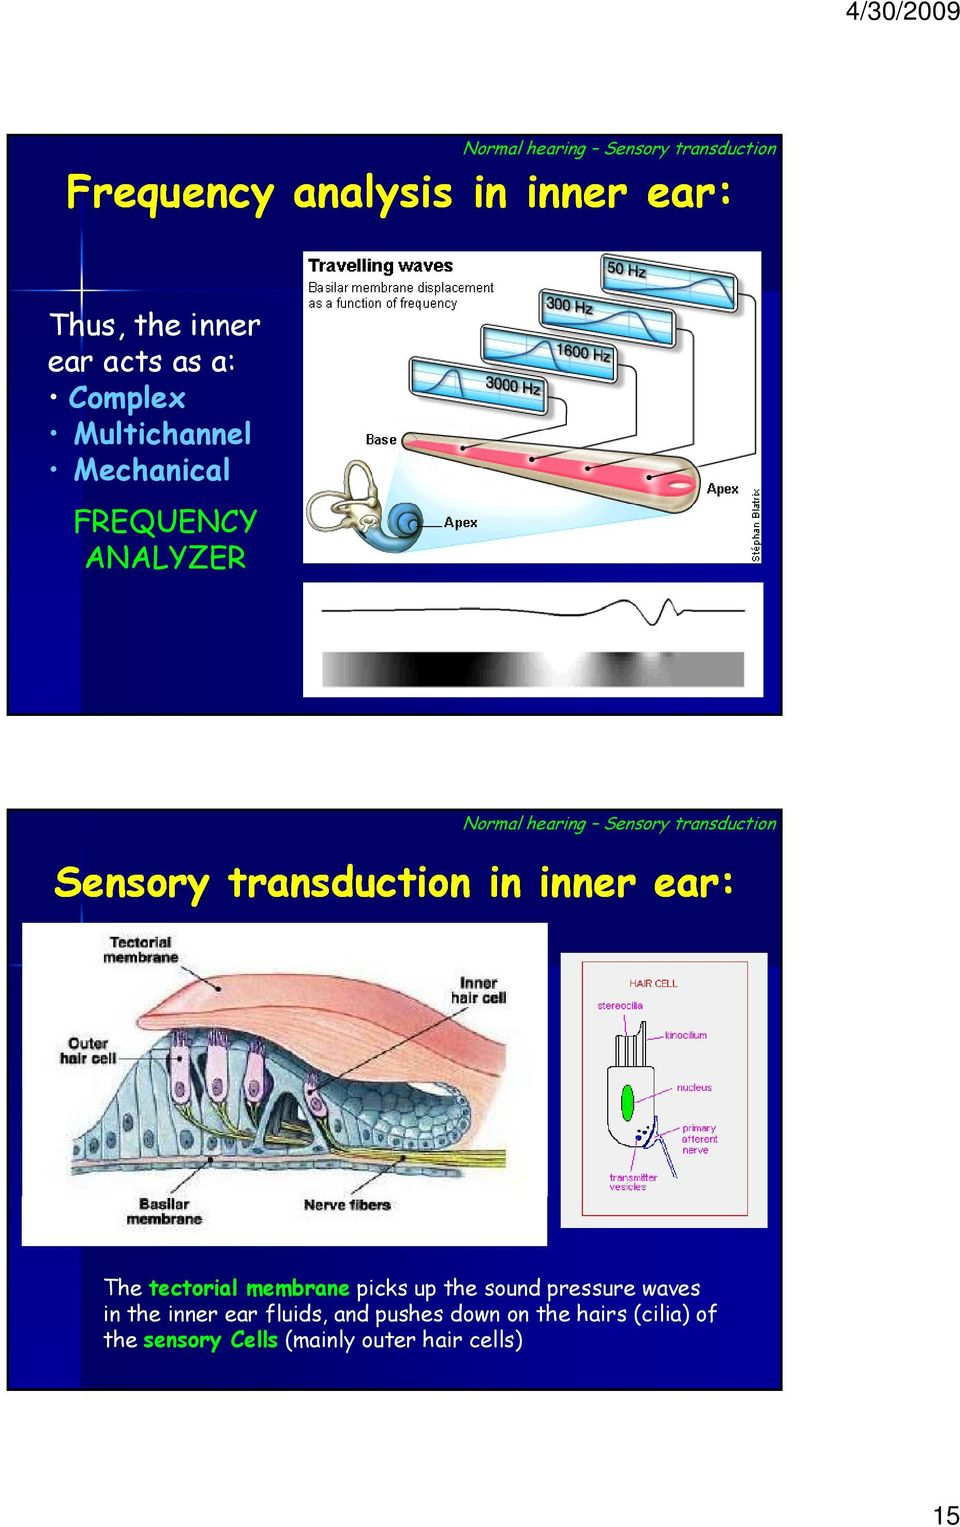 transduction in inner ear: The tectorial membrane picks up the sound pressure waves in the inner